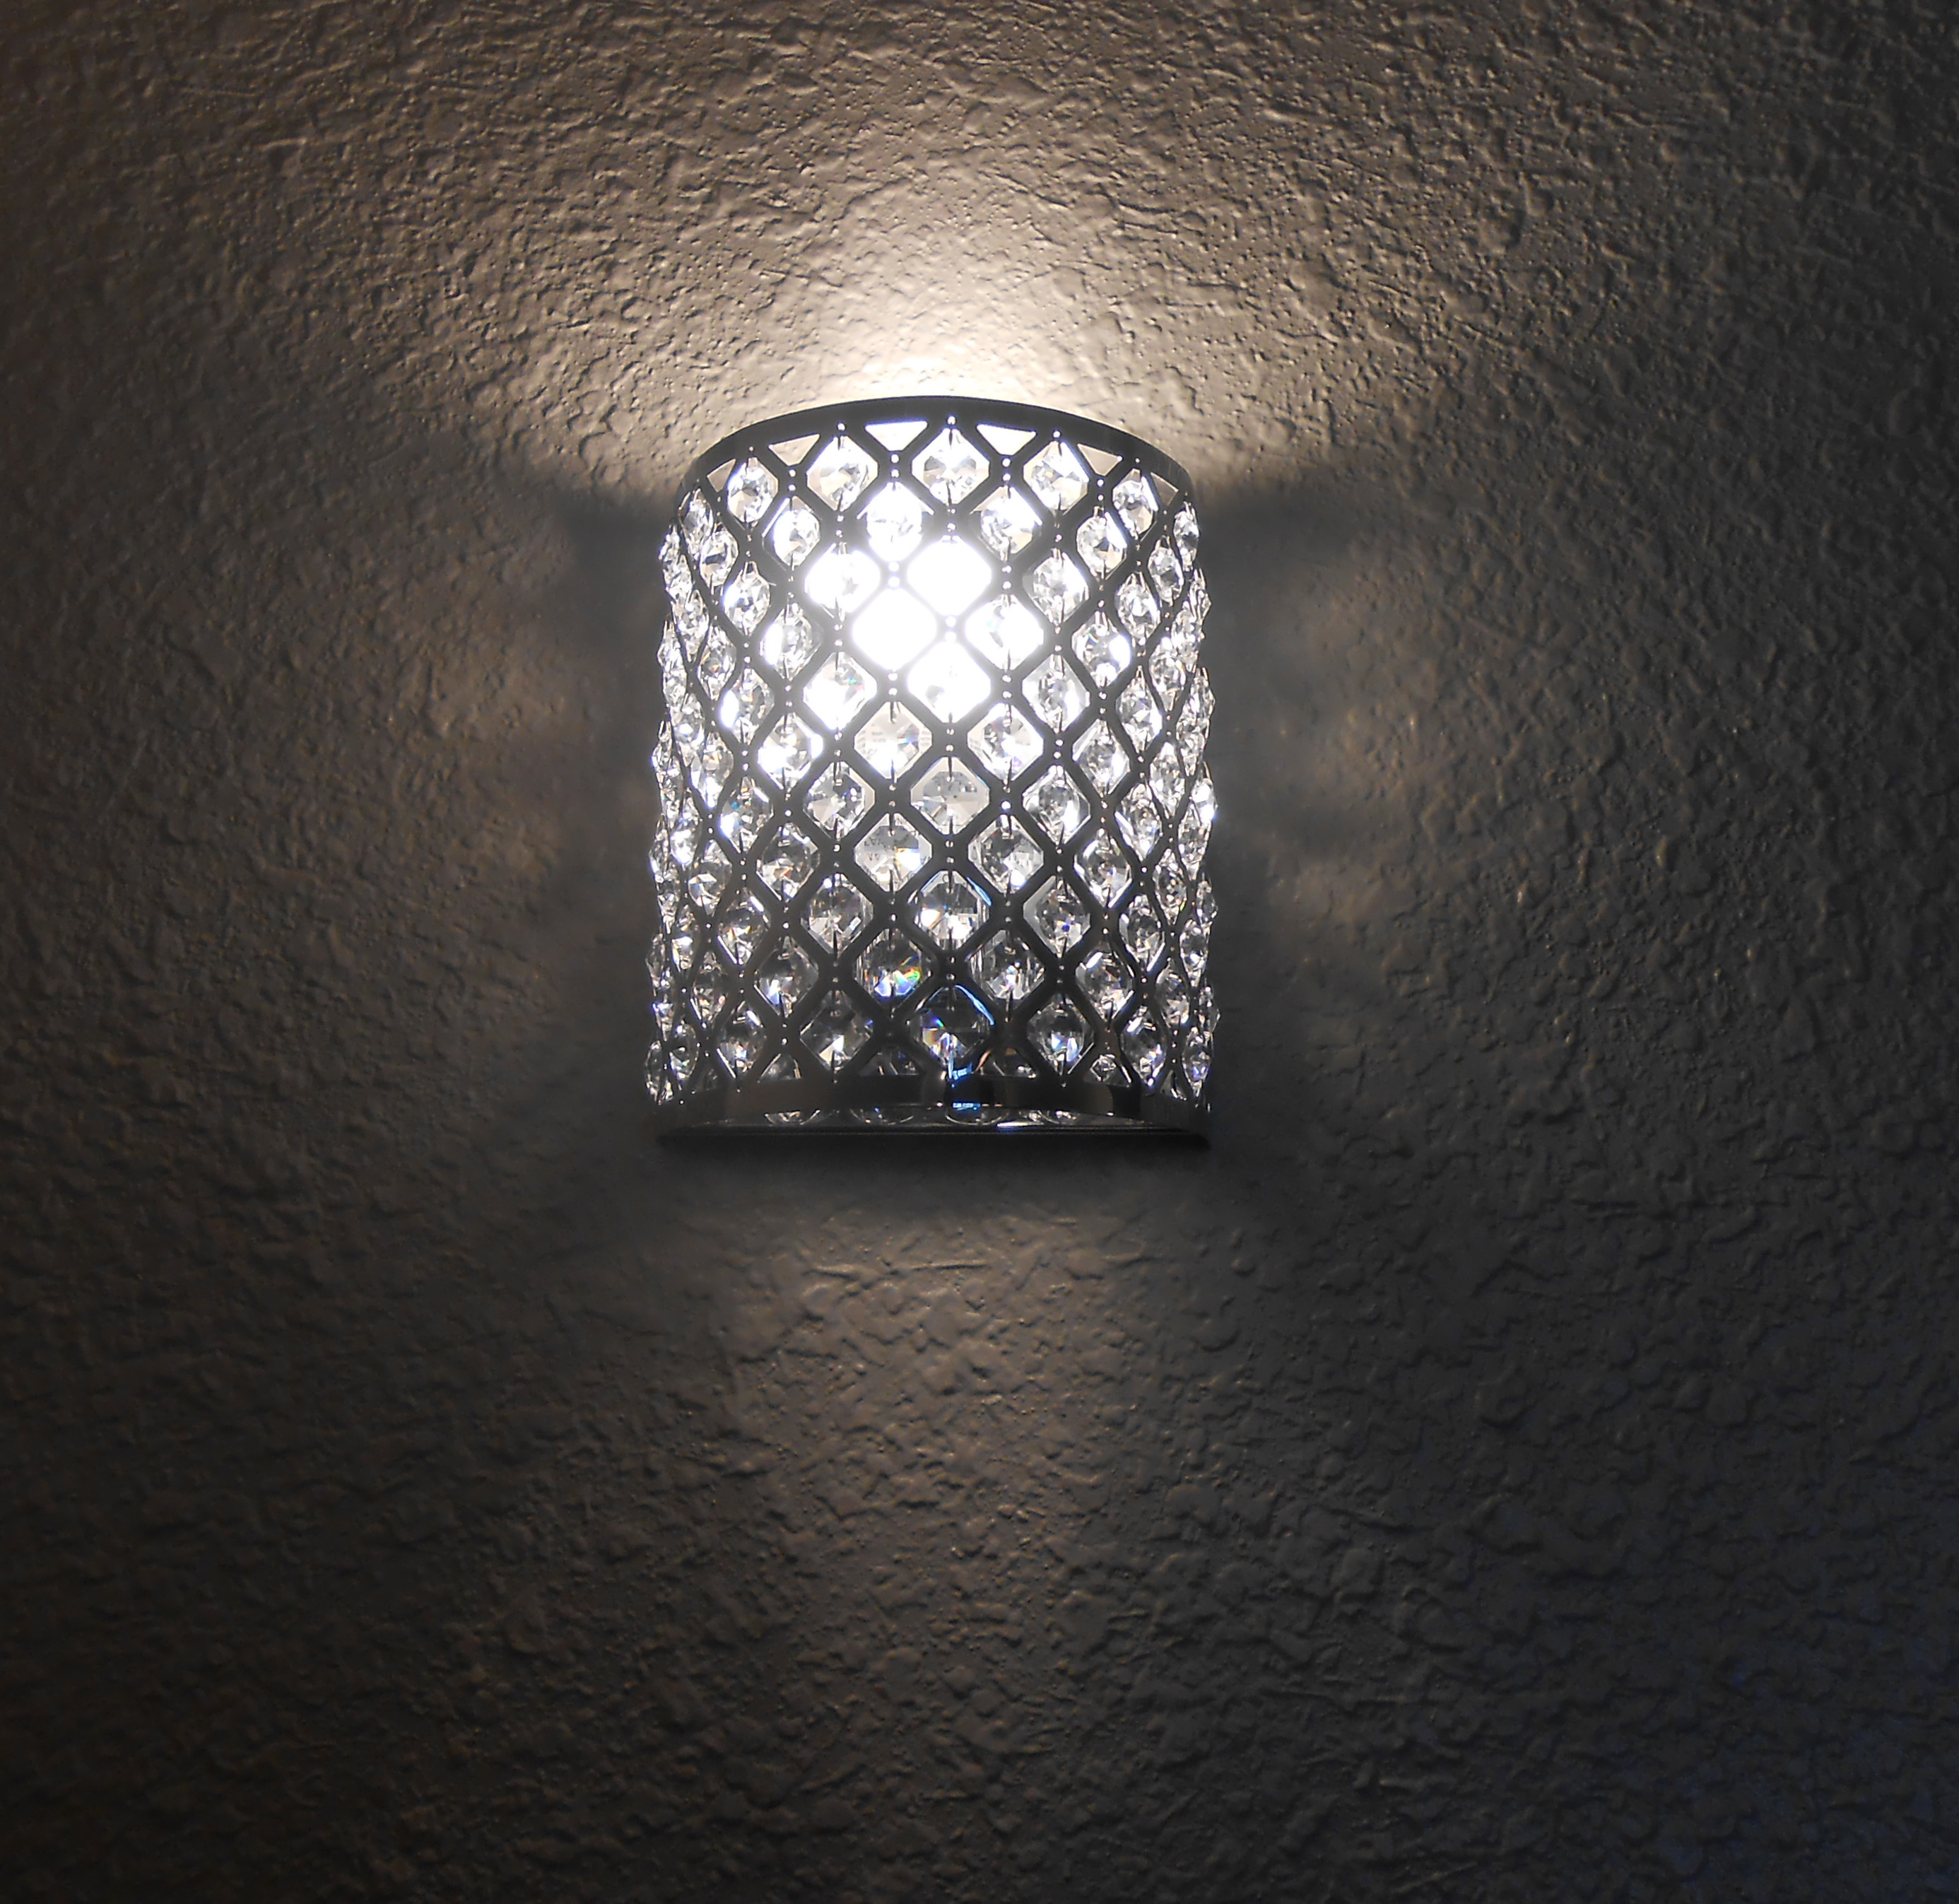 10 factors to consider when choosing the best wall light for your 10 factors to consider when choosing the best wall light for your homeowners audiocablefo light collections